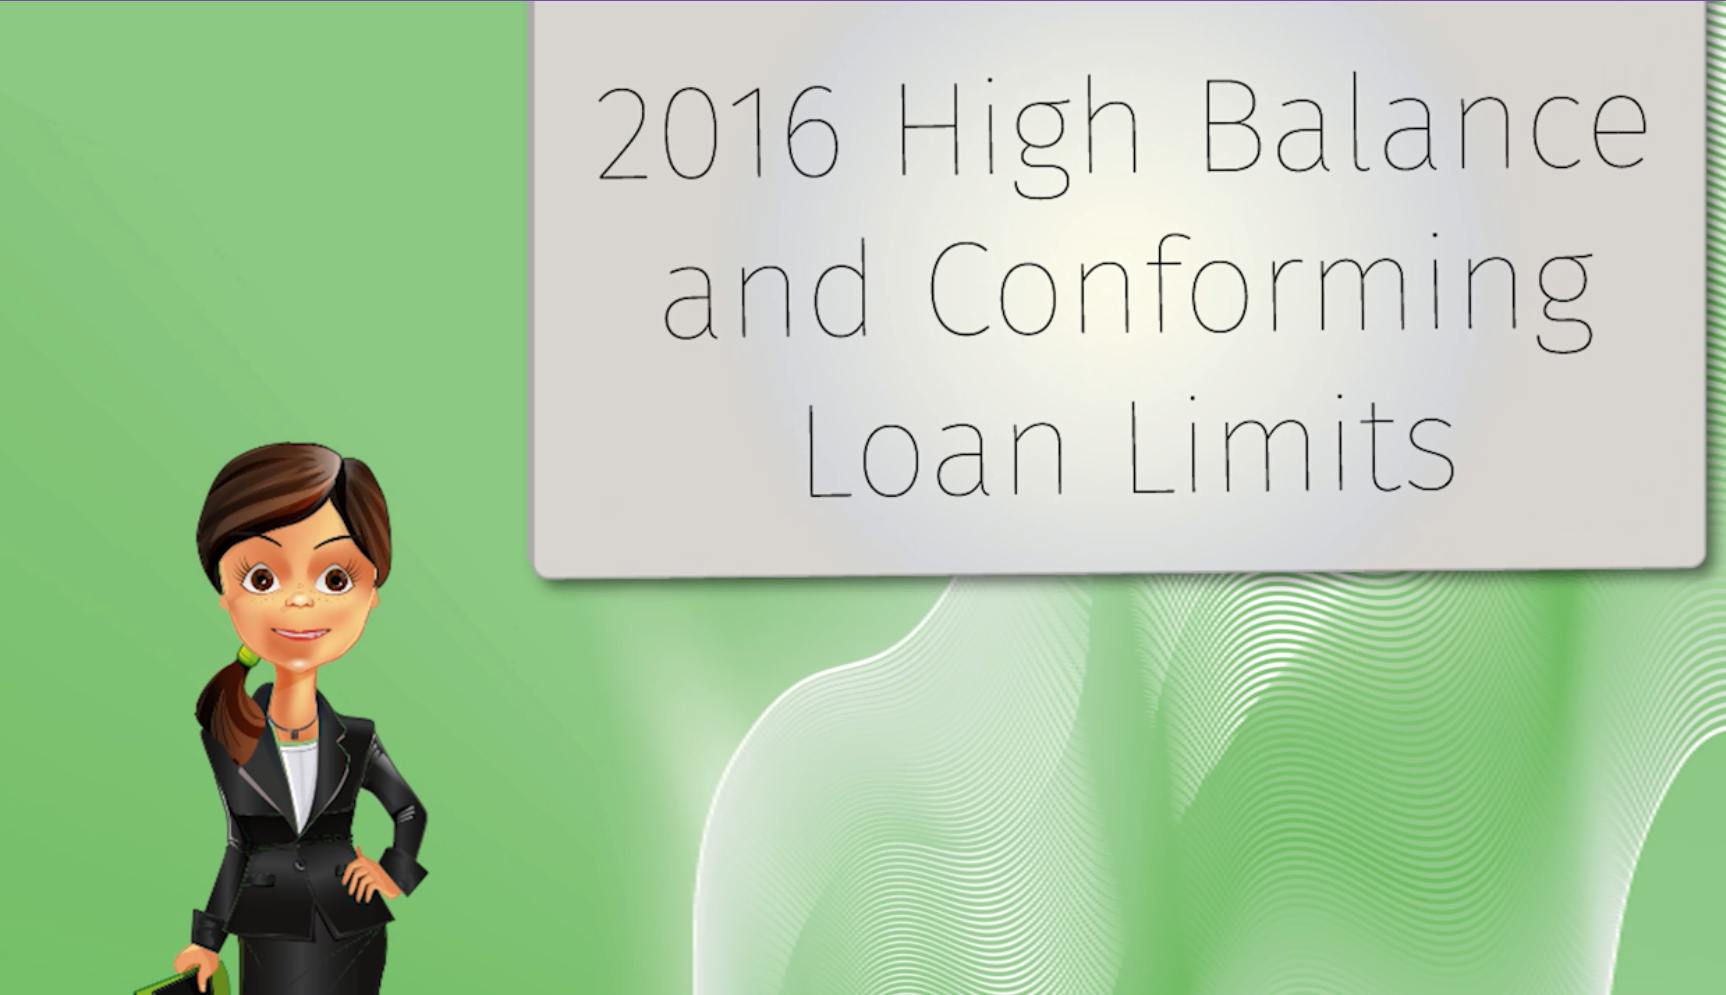 2016 Loan Limits in San Diego